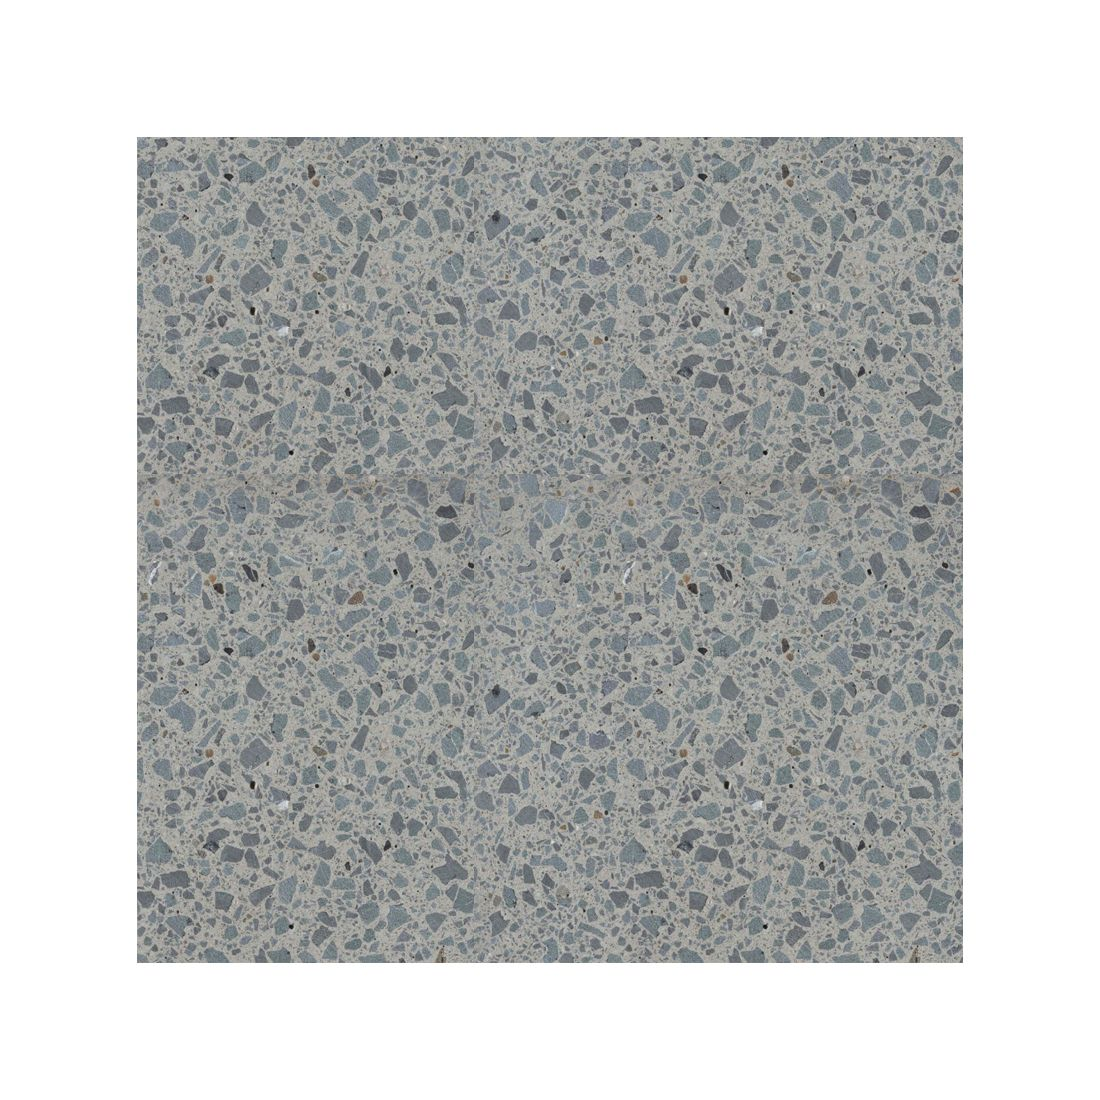 Terrazzo Honed Paver Natural Grey 600 x 600 x 40mm